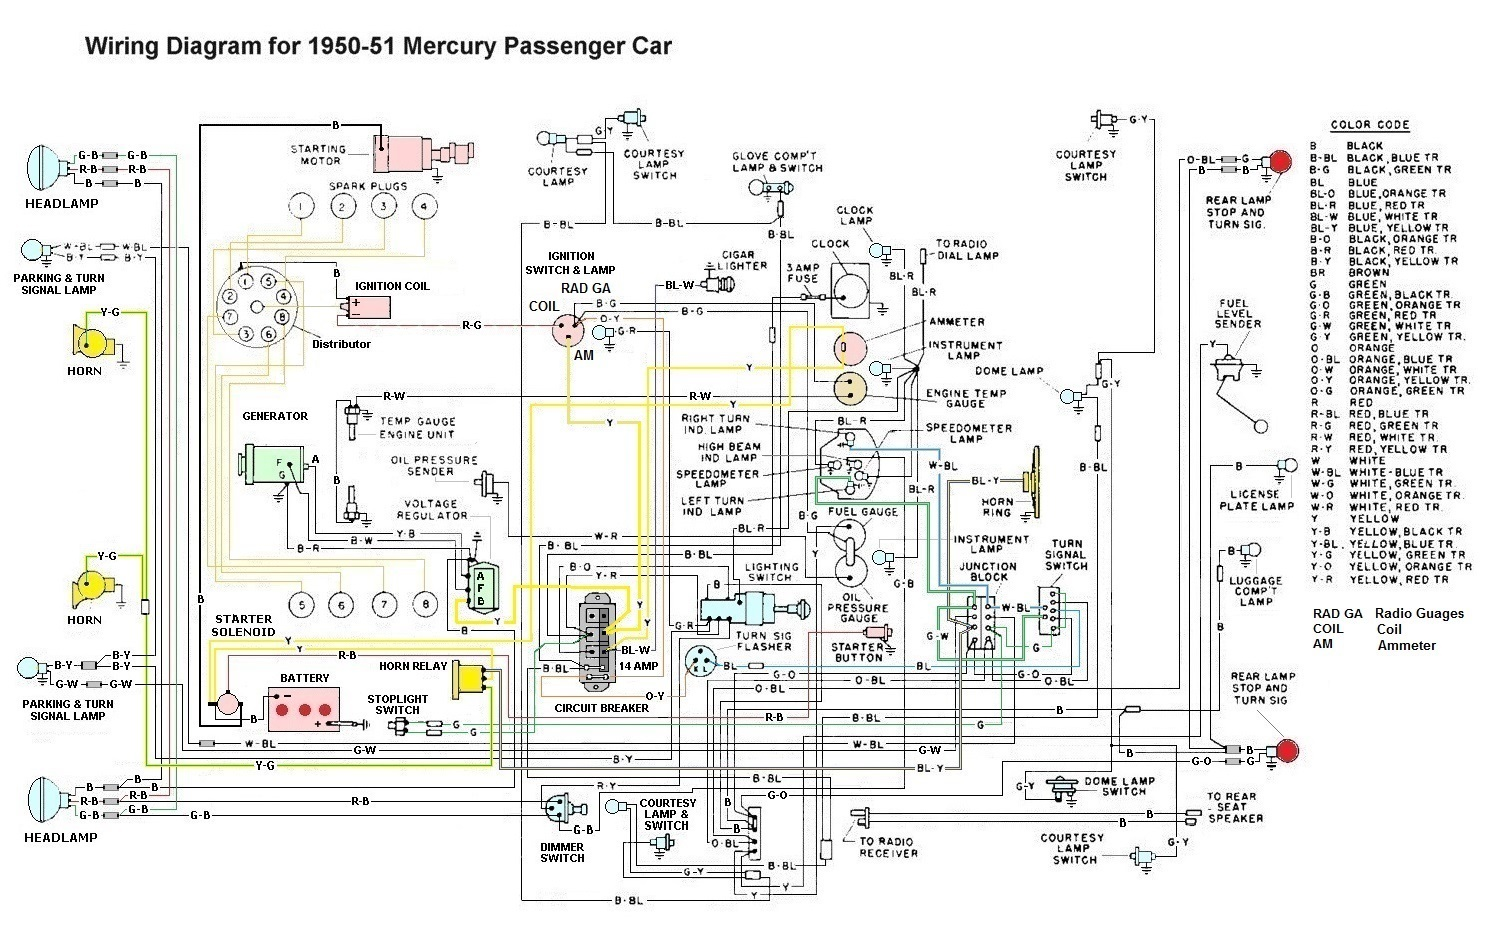 1951 Mercury Turn Signal Wiring Diagram Schematic Another 1950 Merc Electrical And Mechanical Rh Simotime Com 1940 Flasher